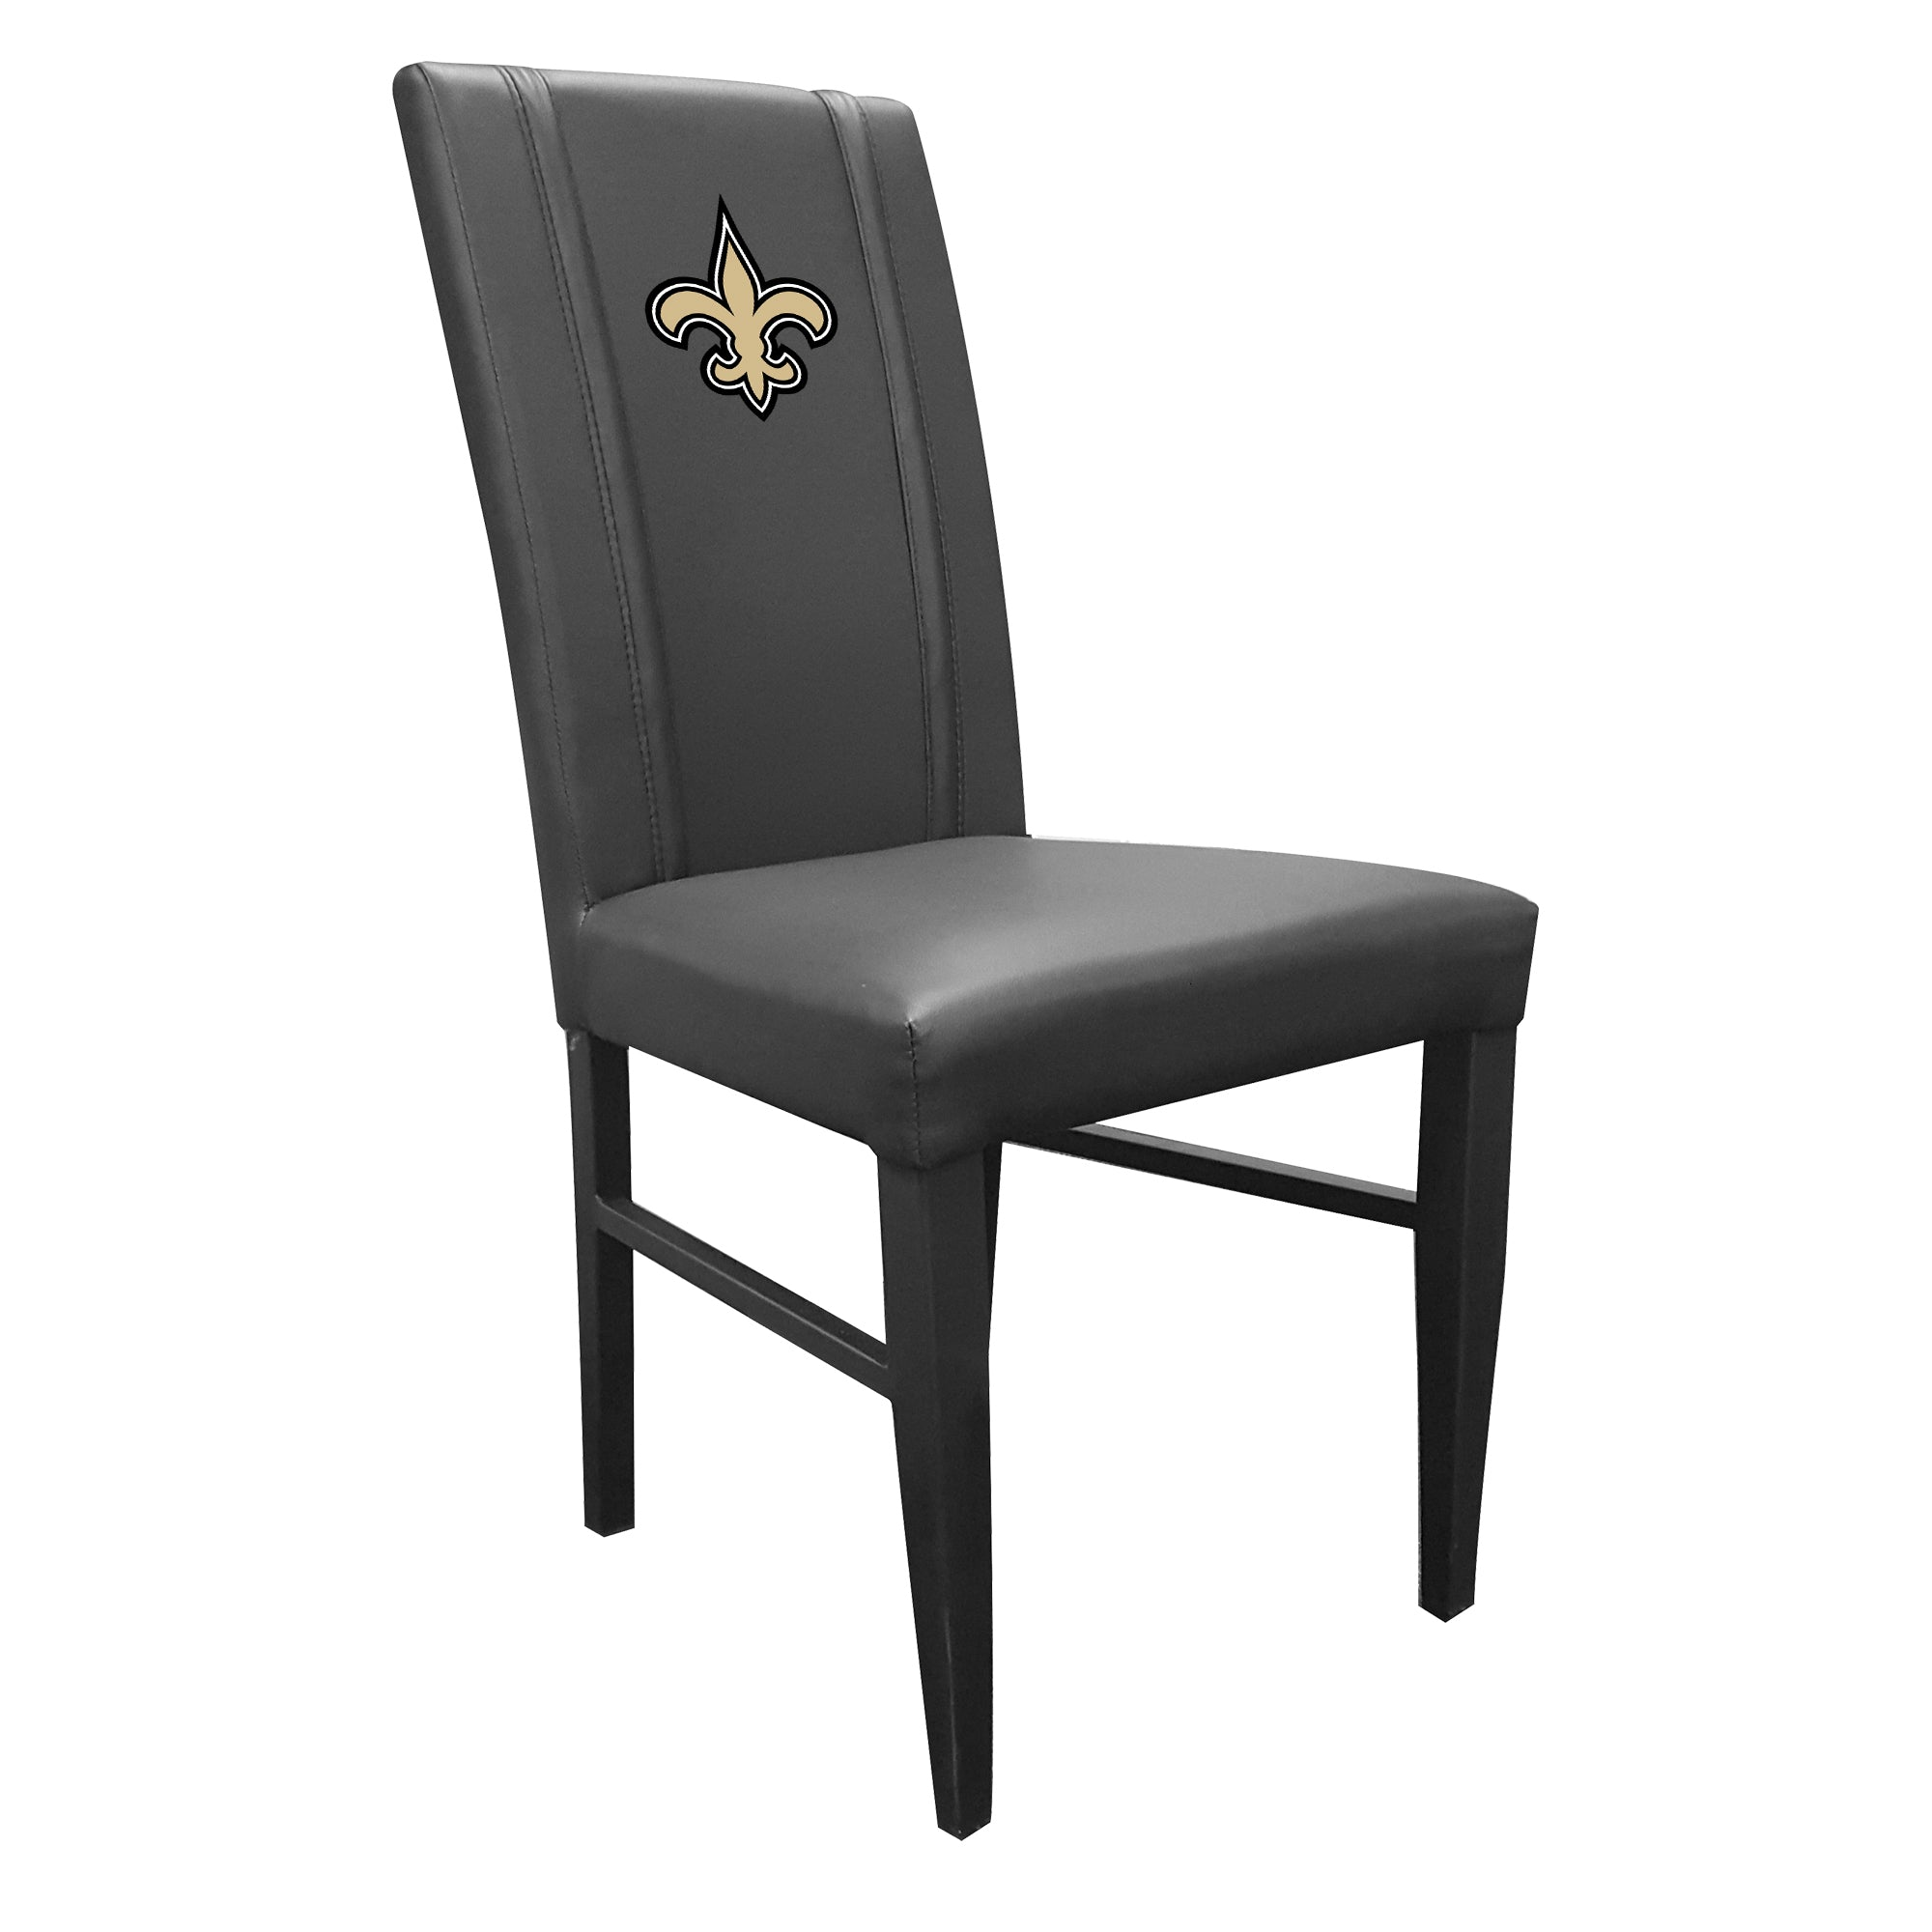 Side Chair 2000 with  New Orleans Saints Primary Logo